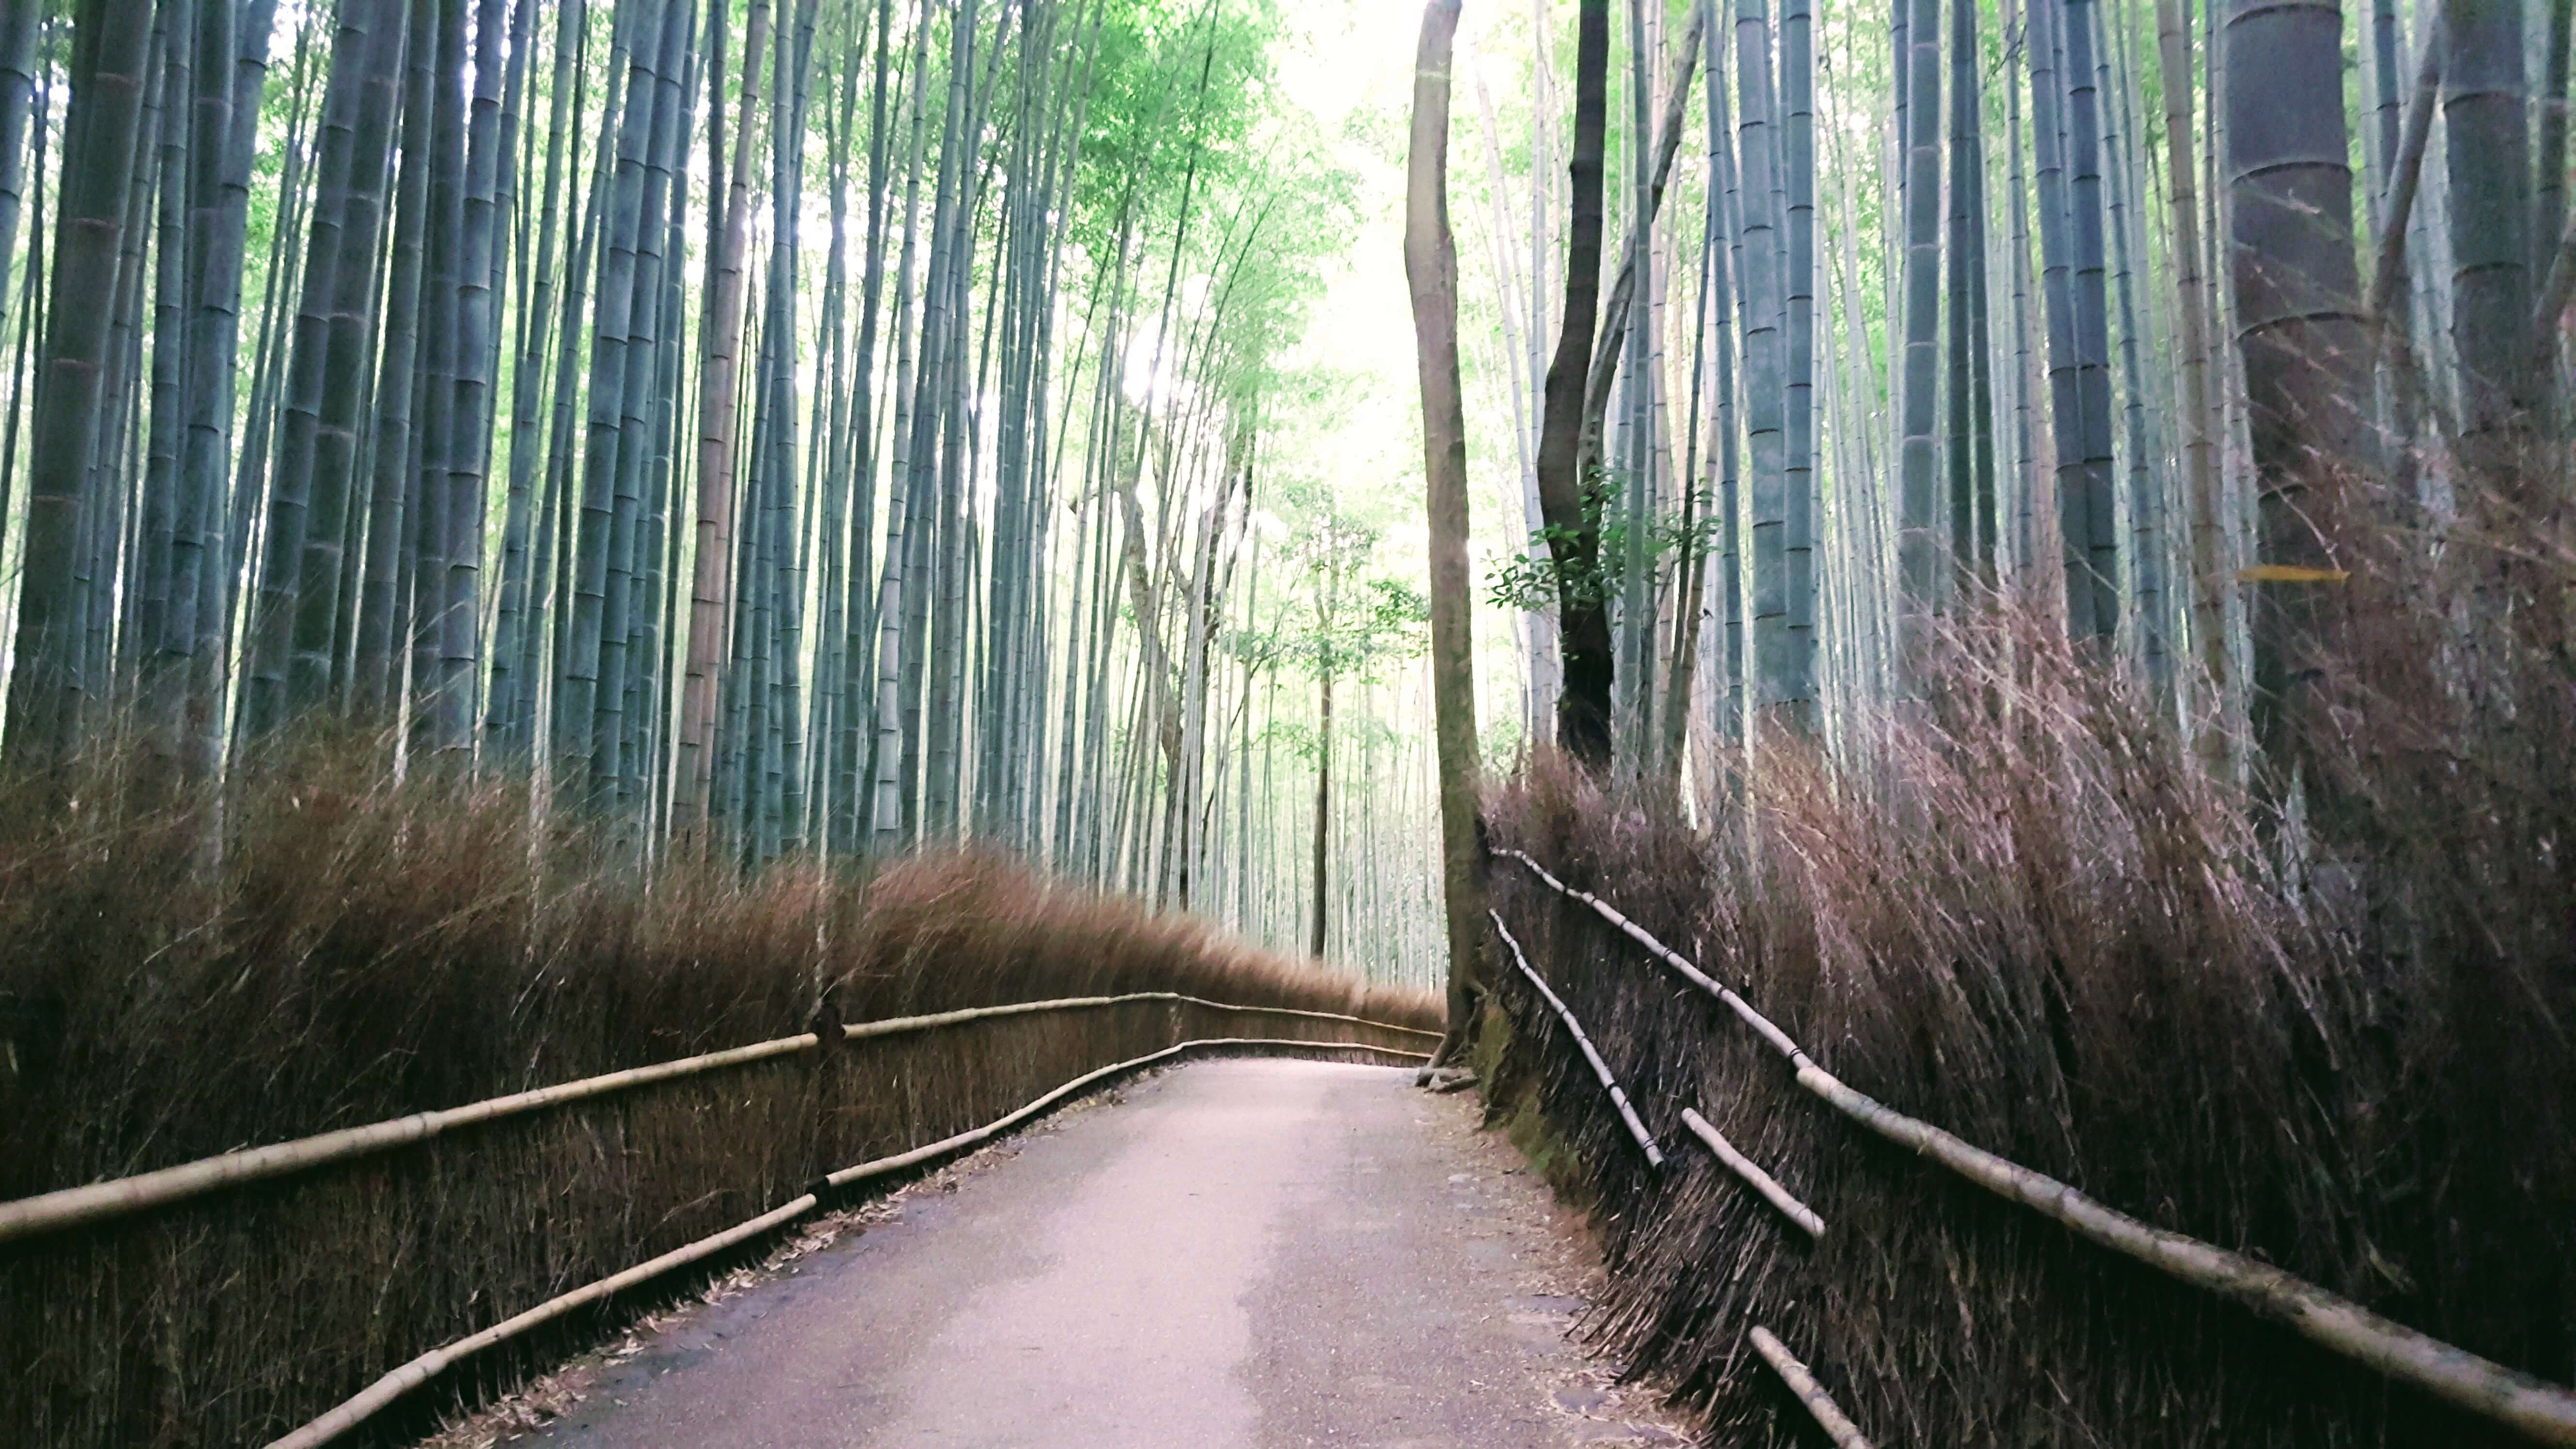 An-image-showing-the-best-things-to-do-in-kyoto-bamboo-grove